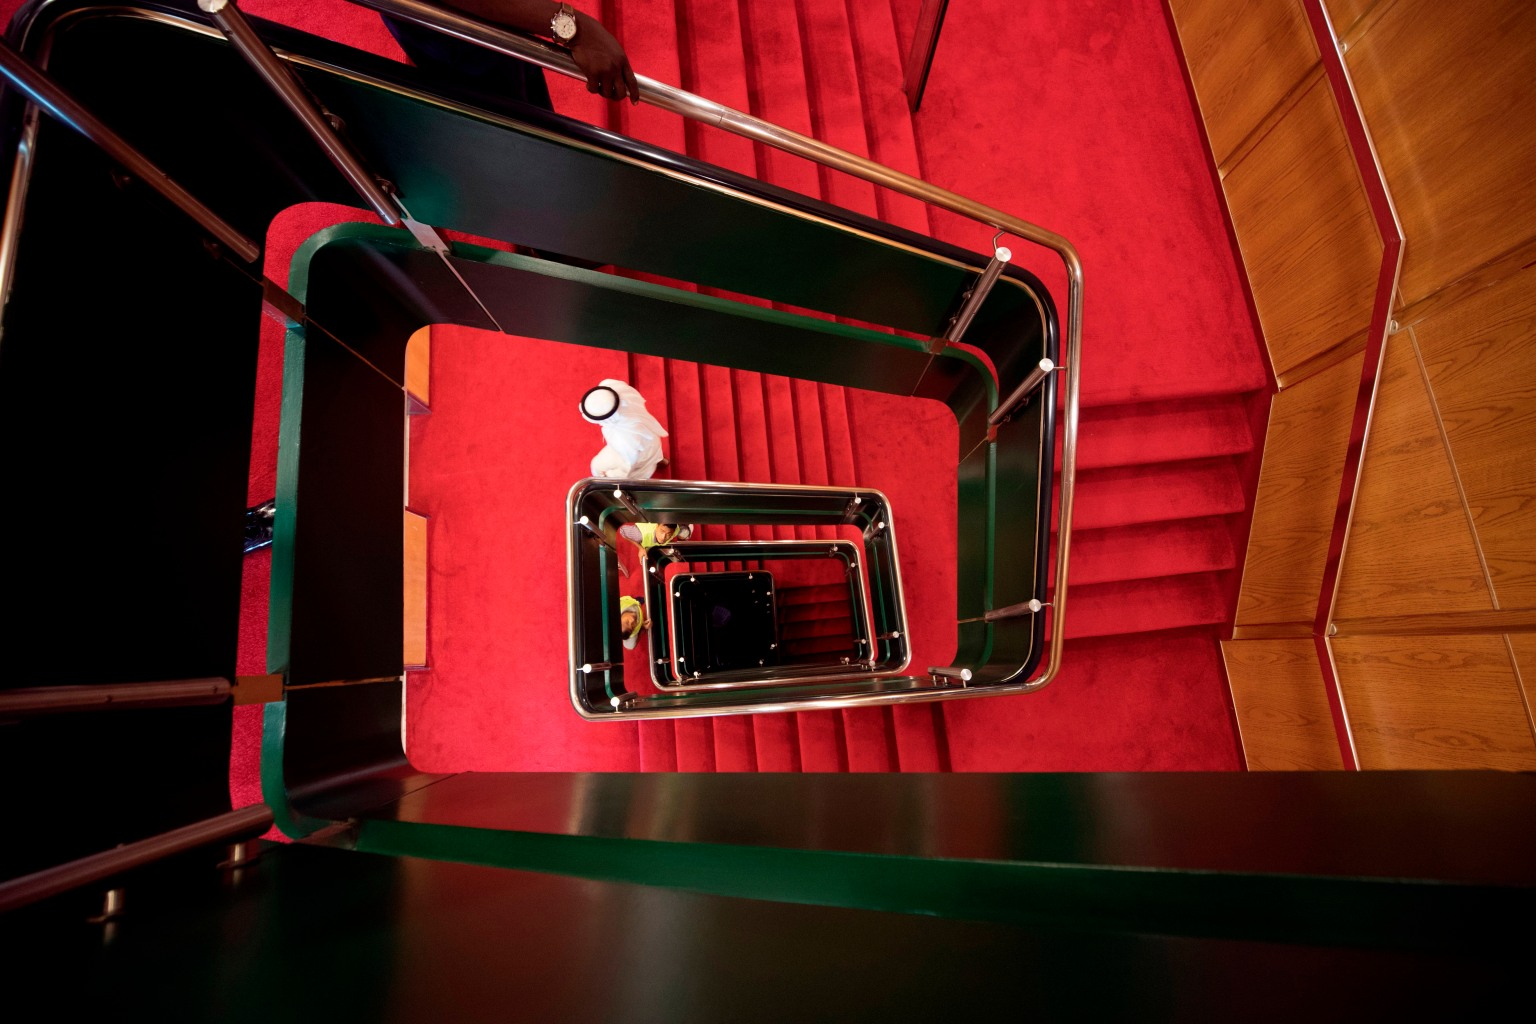 A lift system and stairwell allows guests to move between the 13 decks on The Queen Elizabeth 2 luxury cruise liner on April 18 at Port Rashid, Dubai. The refurbished ship will be moored permanently there as a floating hotel. KARIM SAHIB/AFP/Getty Images